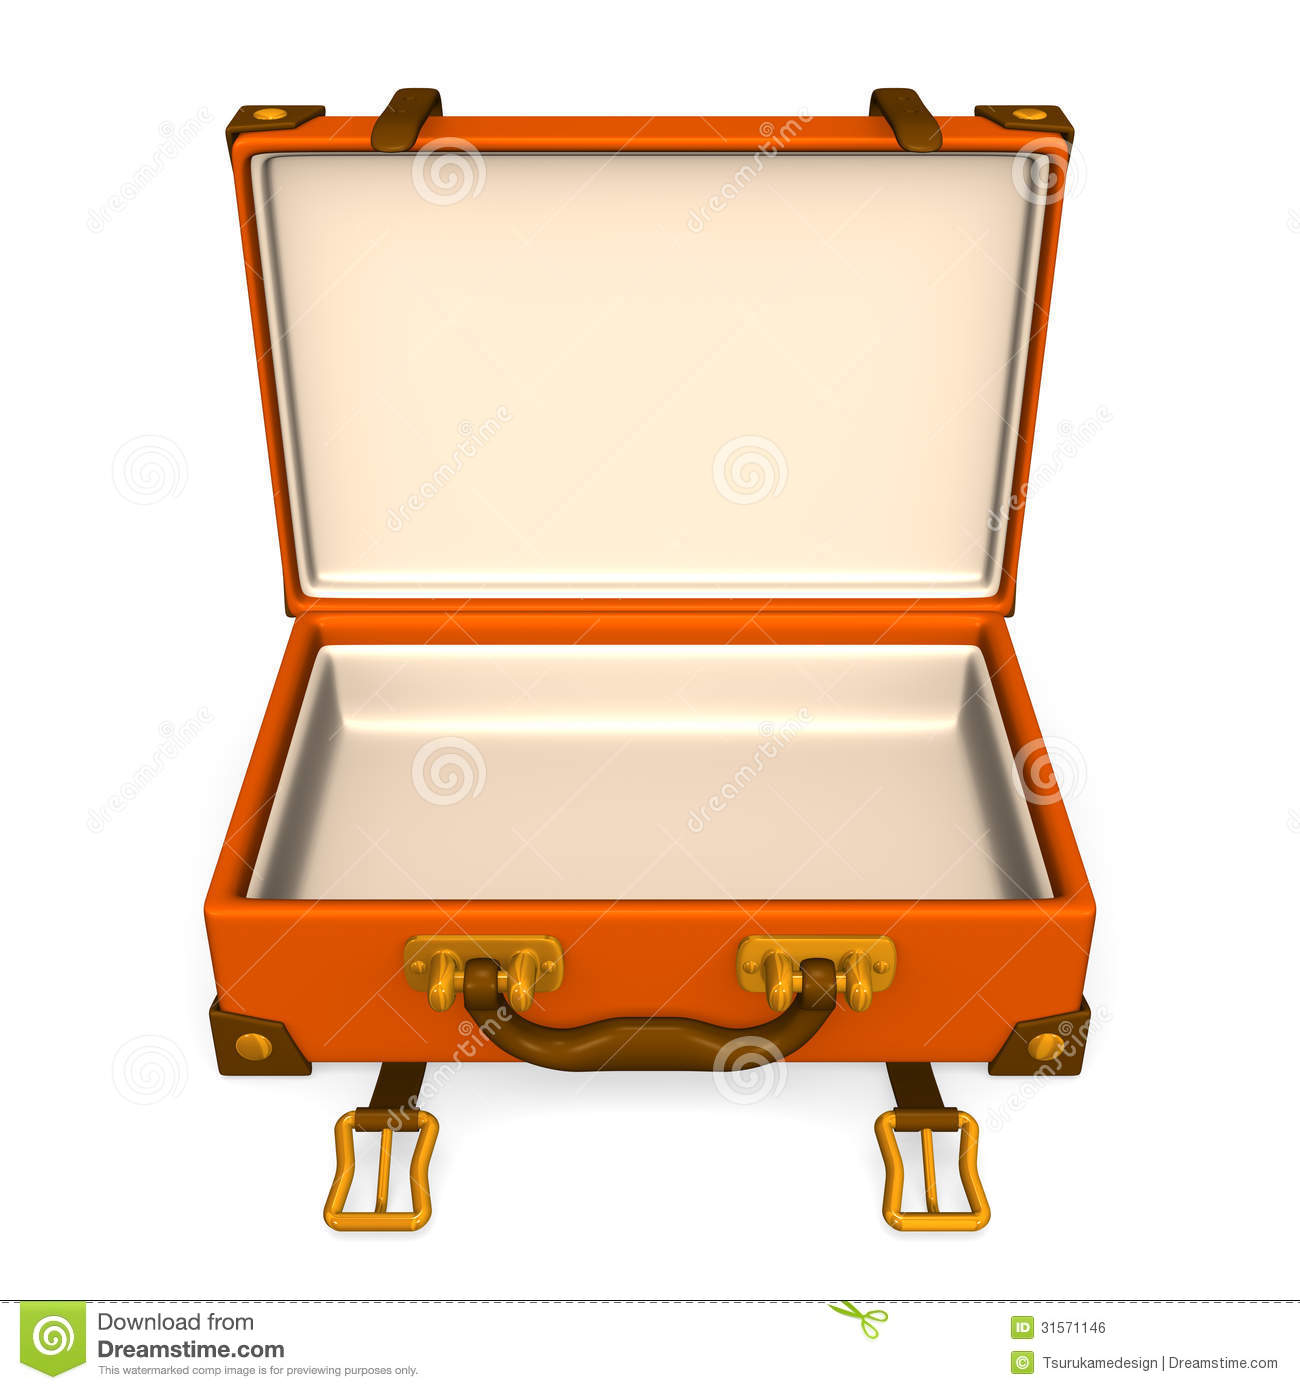 Suitcase clipart open suitcase #5 - Open Suitcase PNG HD